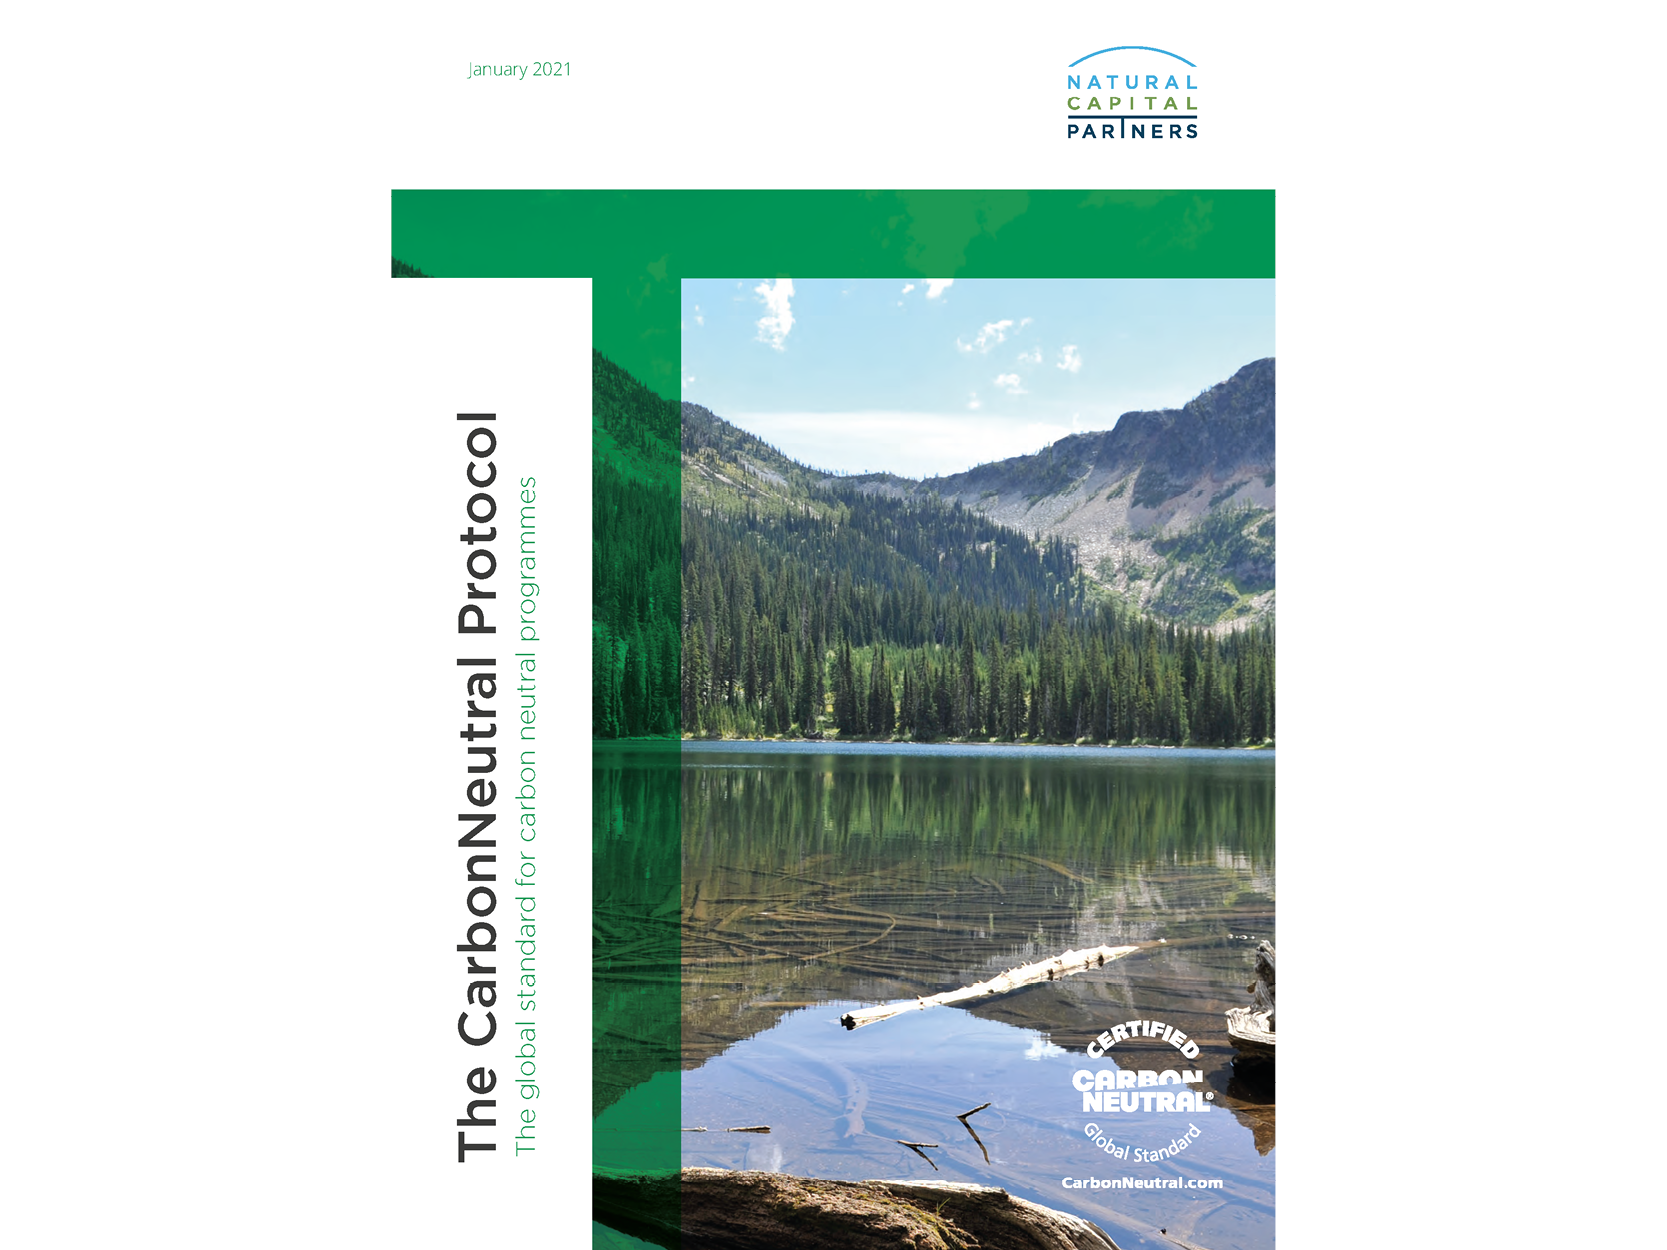 Launching the updated CarbonNeutral Protocol: the framework for high impact corporate climate action